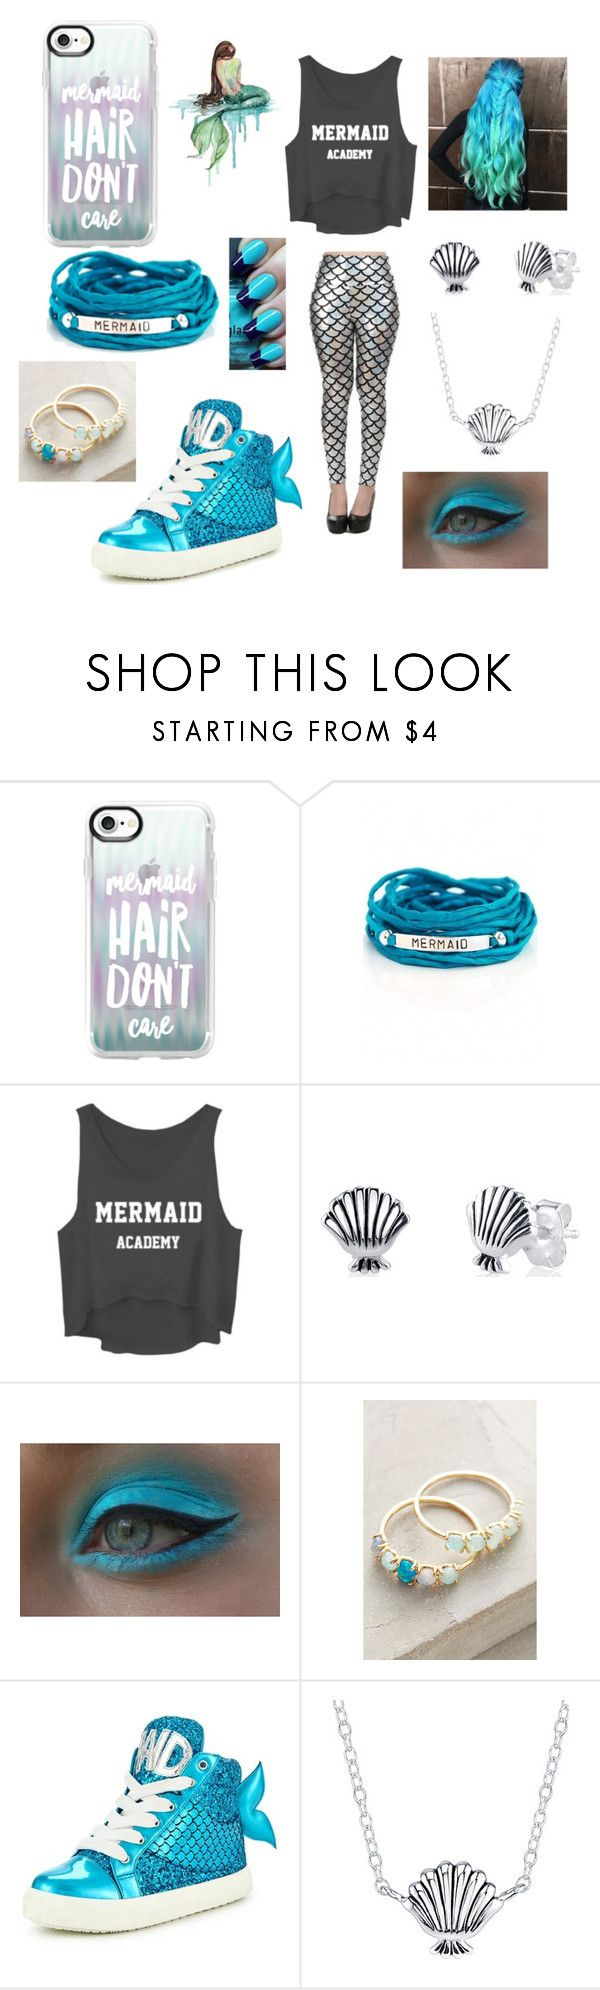 """Mermaids Swim (Collection)"" by skye-plays-too-many-video-games ❤ liked on Polyvore featuring Casetify, WALL, Blooming Lotus Jewelry, Disney, Anthropologie and Miss KG"